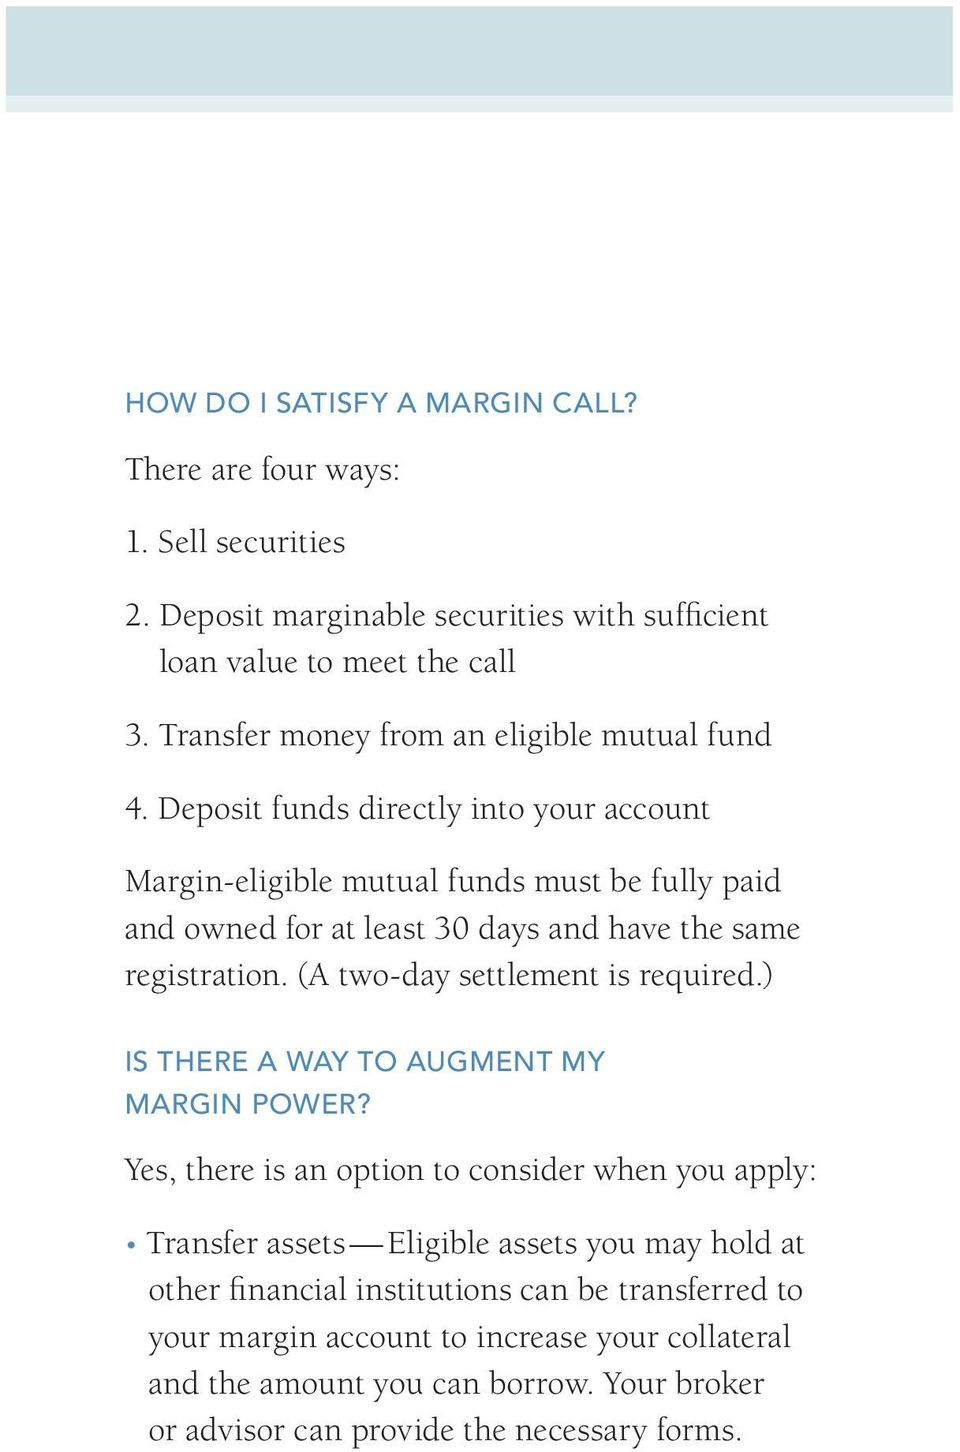 Deposit funds directly into your account Margin-eligible mutual funds must be fully paid and owned for at least 30 days and have the same registration.